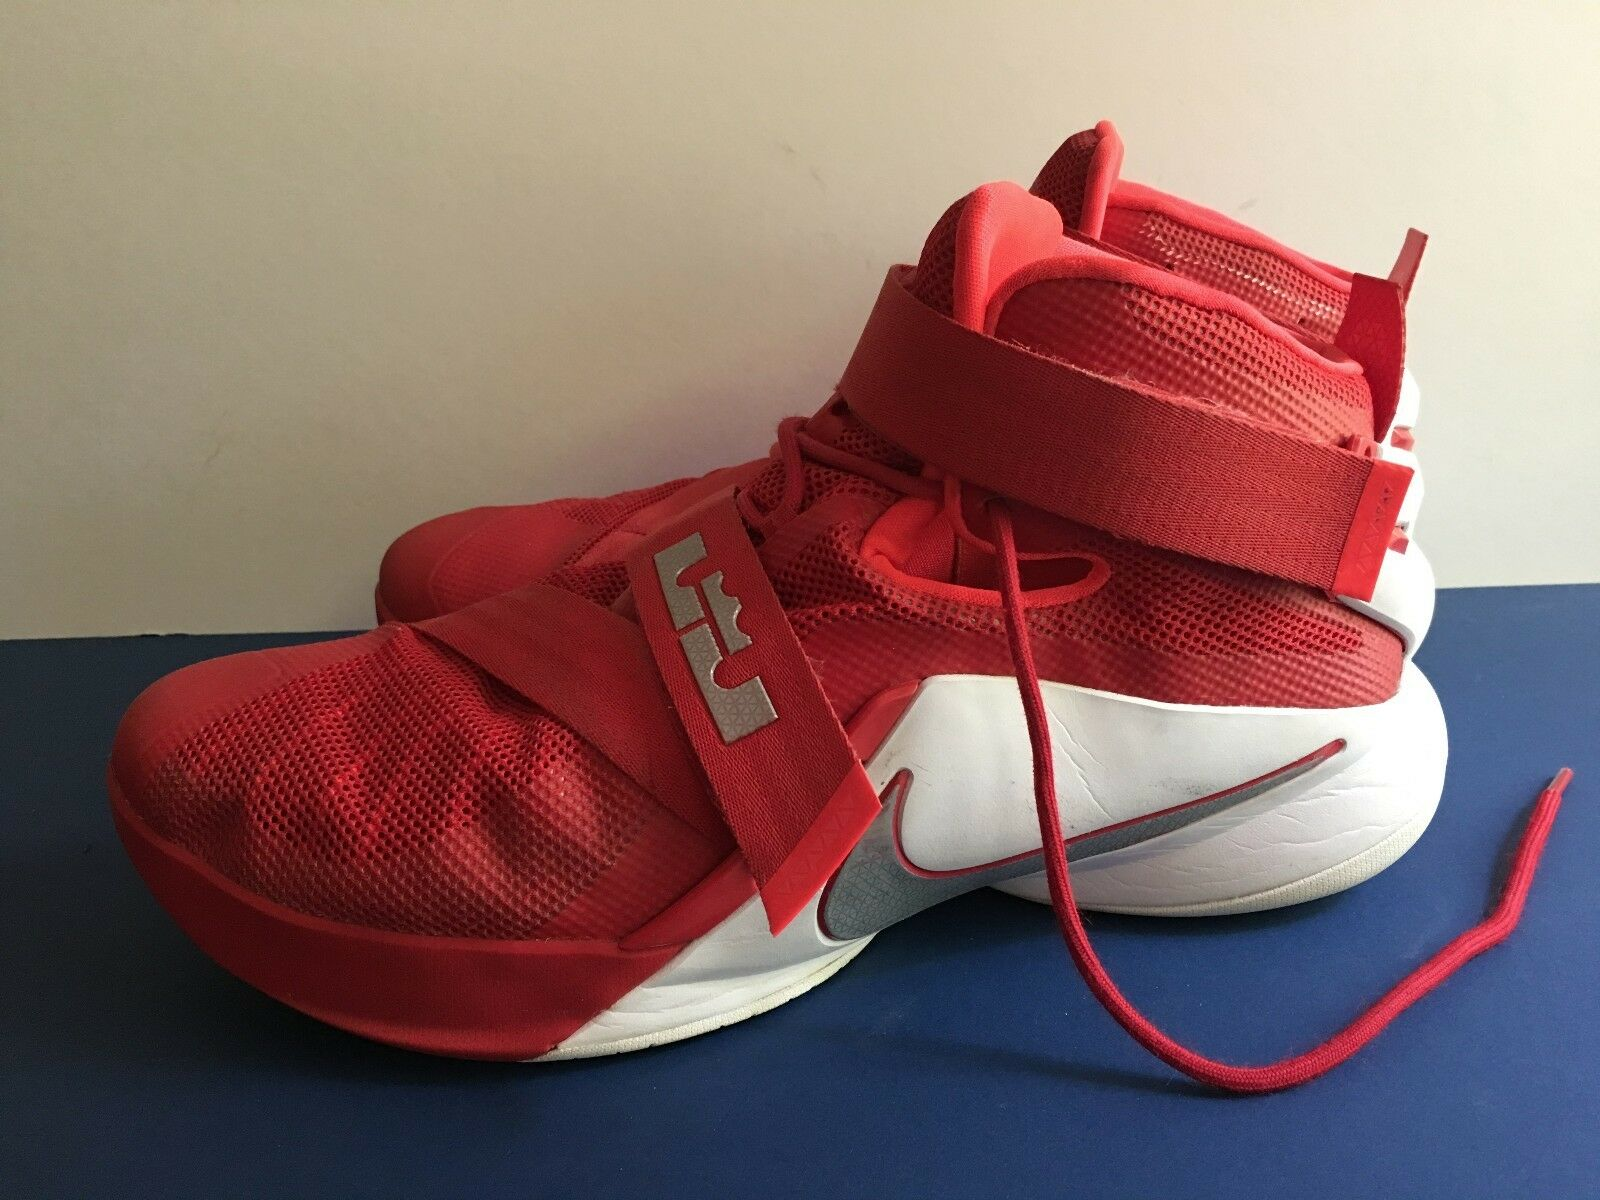 Nike Lebron Red- James Soldier IX TB Basketball Sneakers- Red- Lebron 749498-601 SZ 15 f154ef